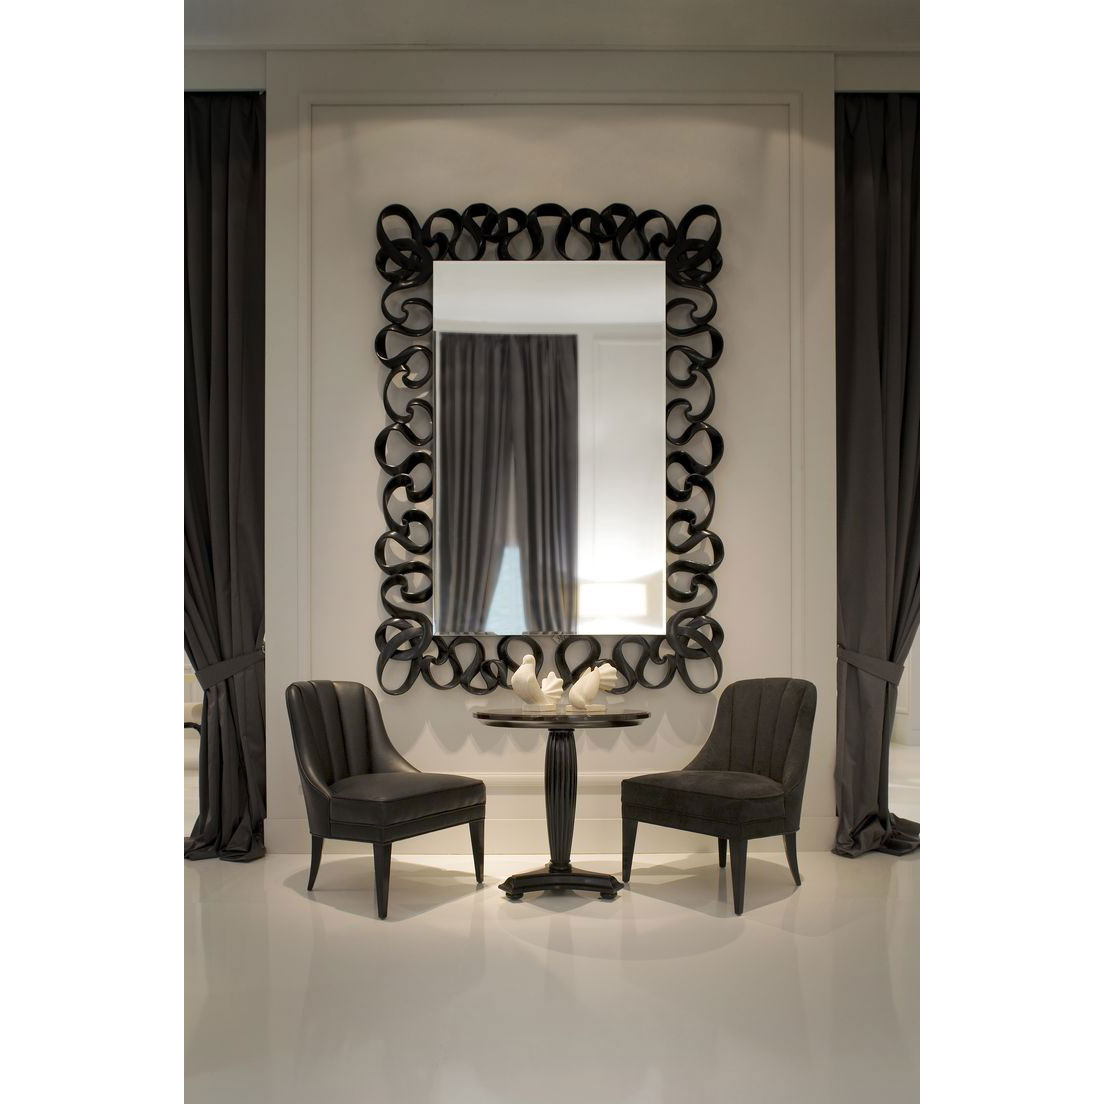 grand miroir mural design dahlia idkrea collection rennes. Black Bedroom Furniture Sets. Home Design Ideas